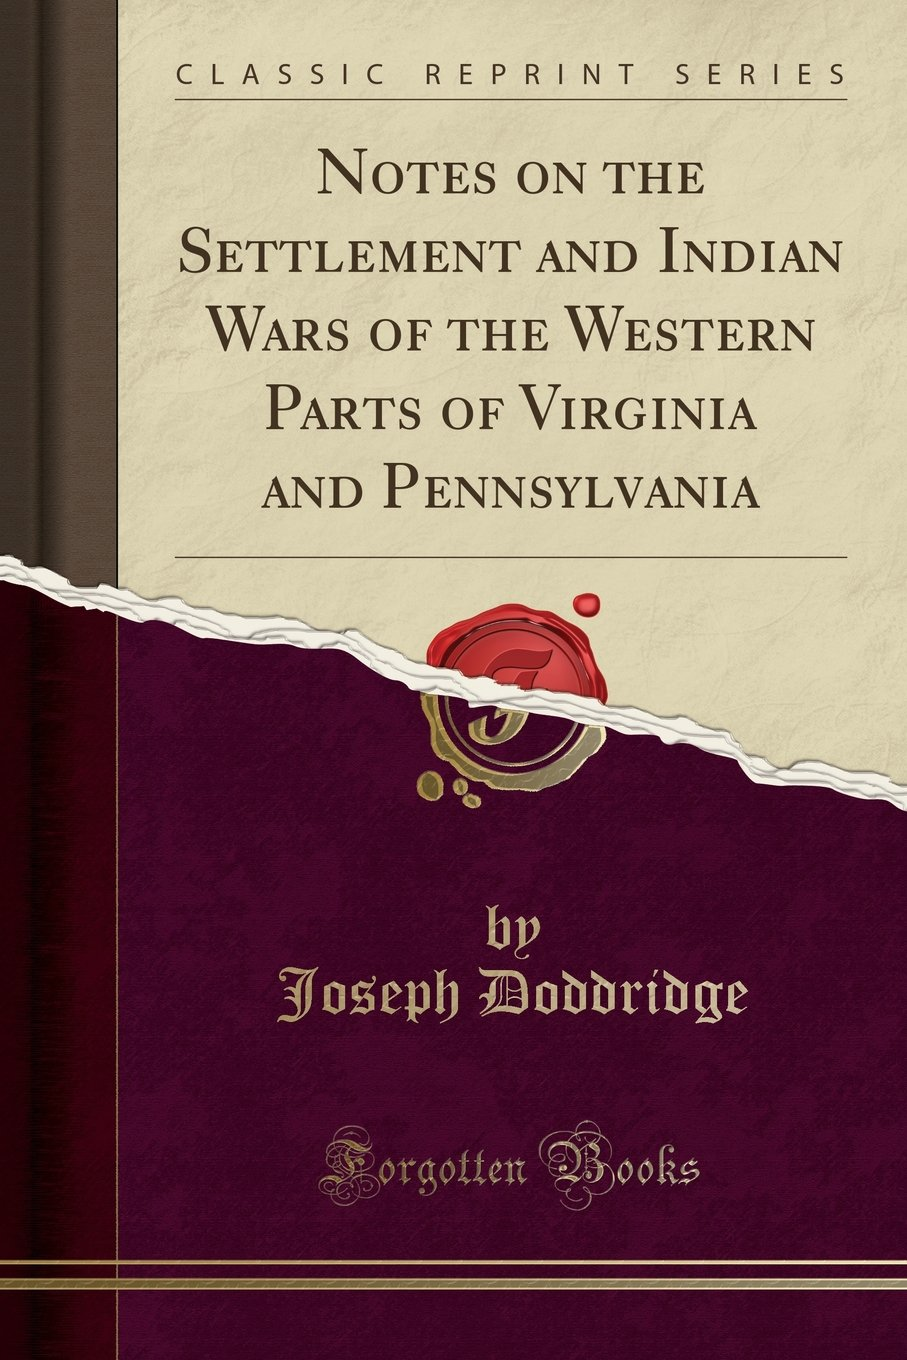 Notes on the Settlement and Indian Wars of the Western Parts of Virginia and Pennsylvania (Classic Reprint) pdf